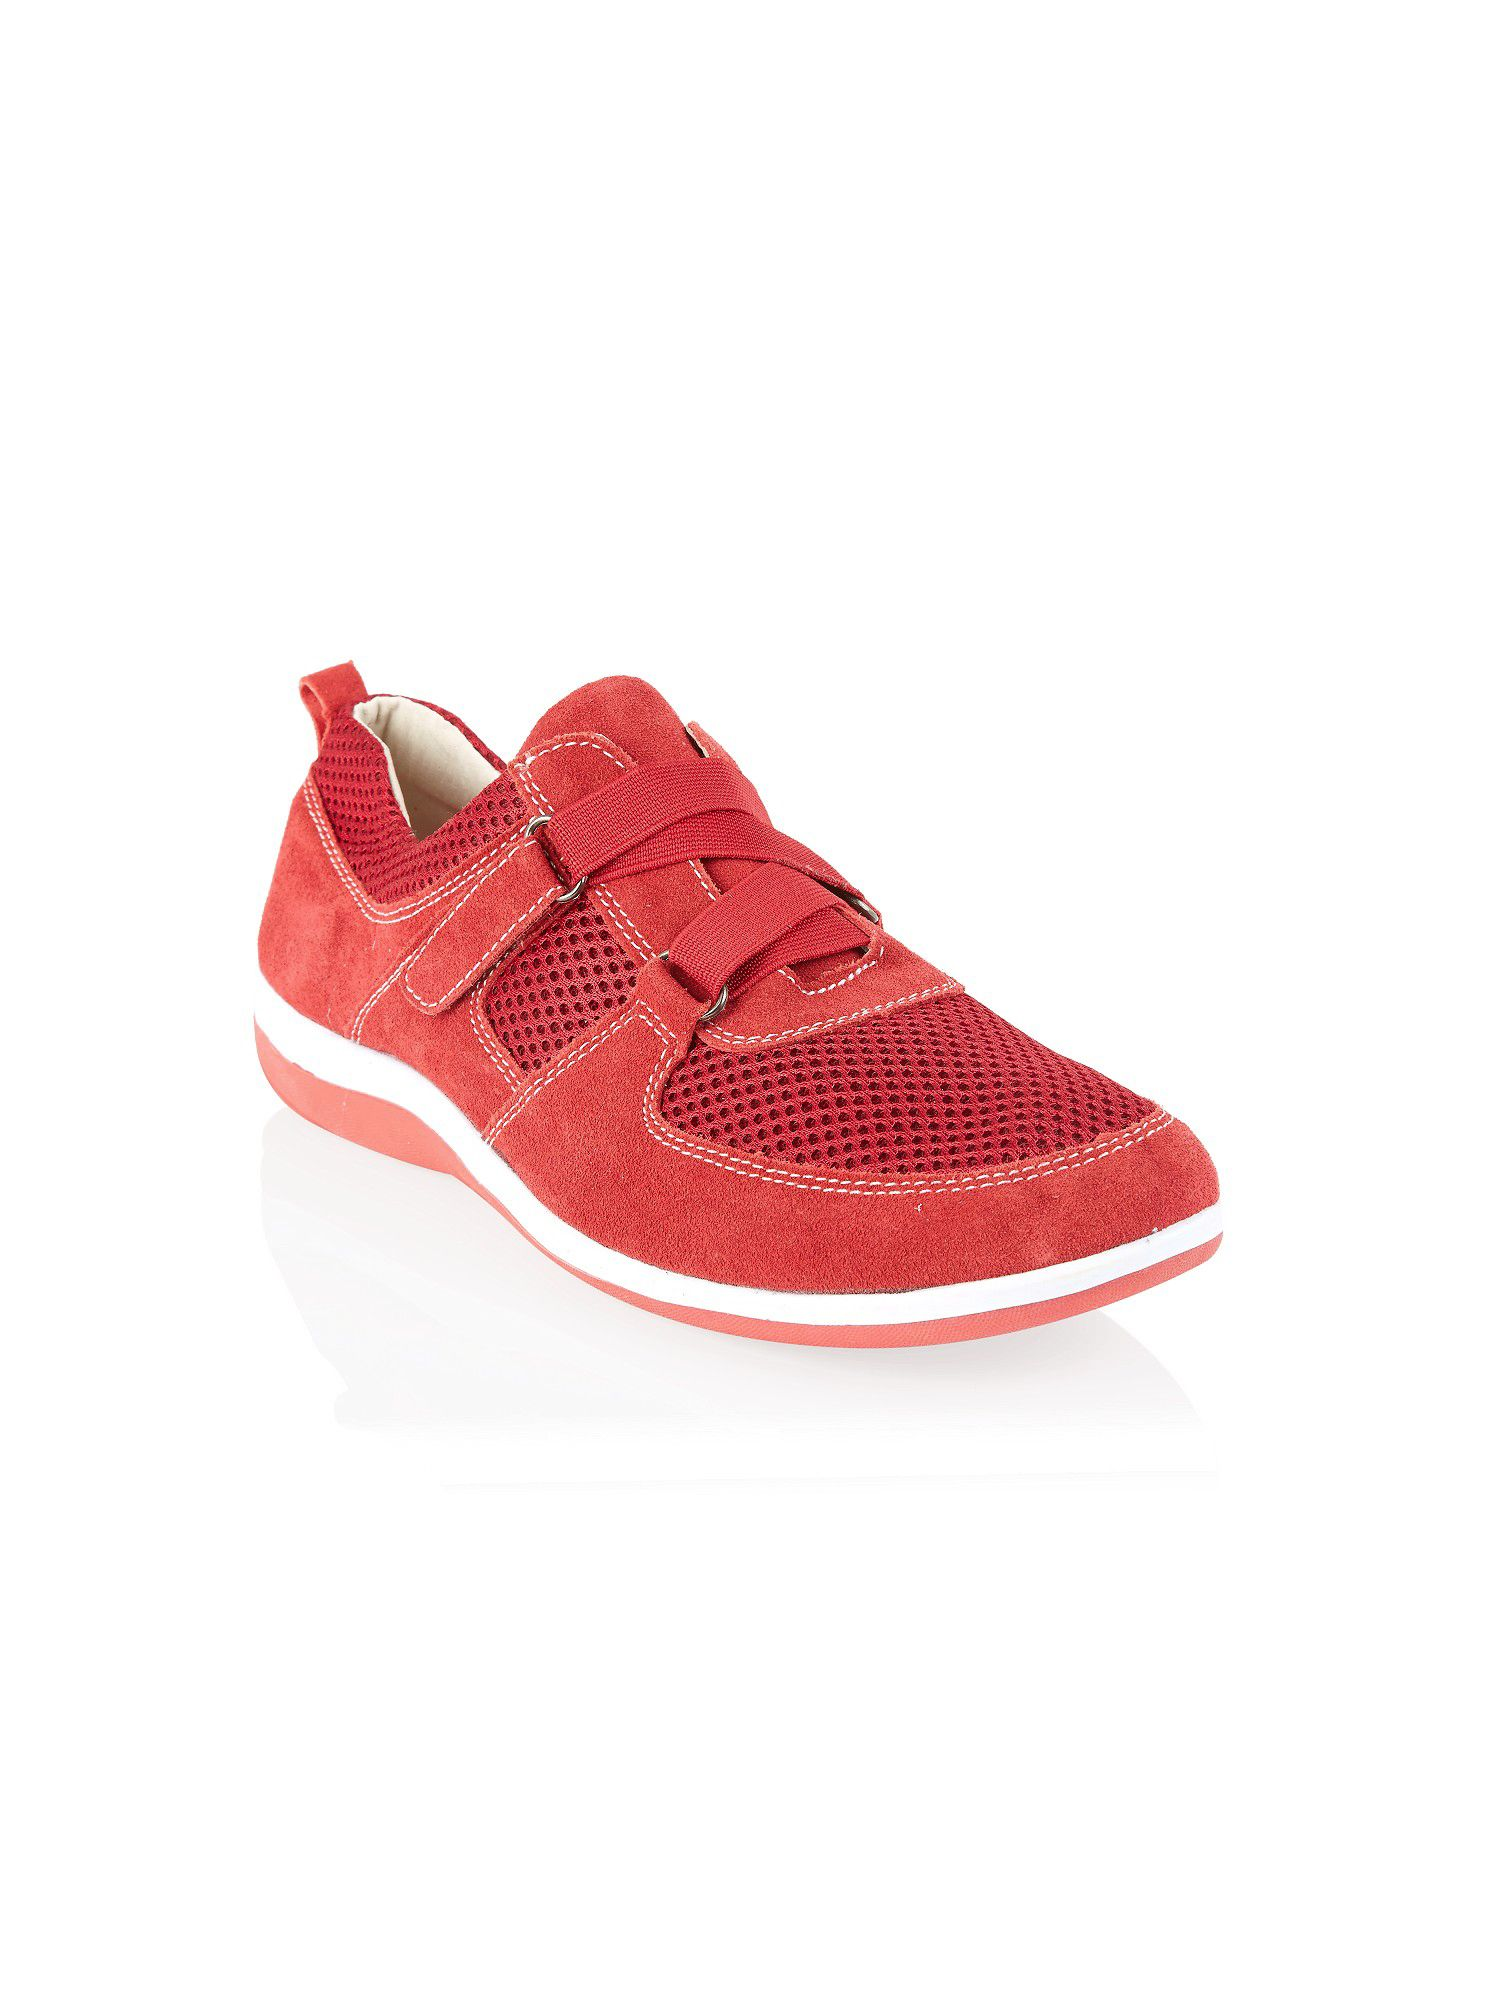 Red velcro mesh sporty shoe